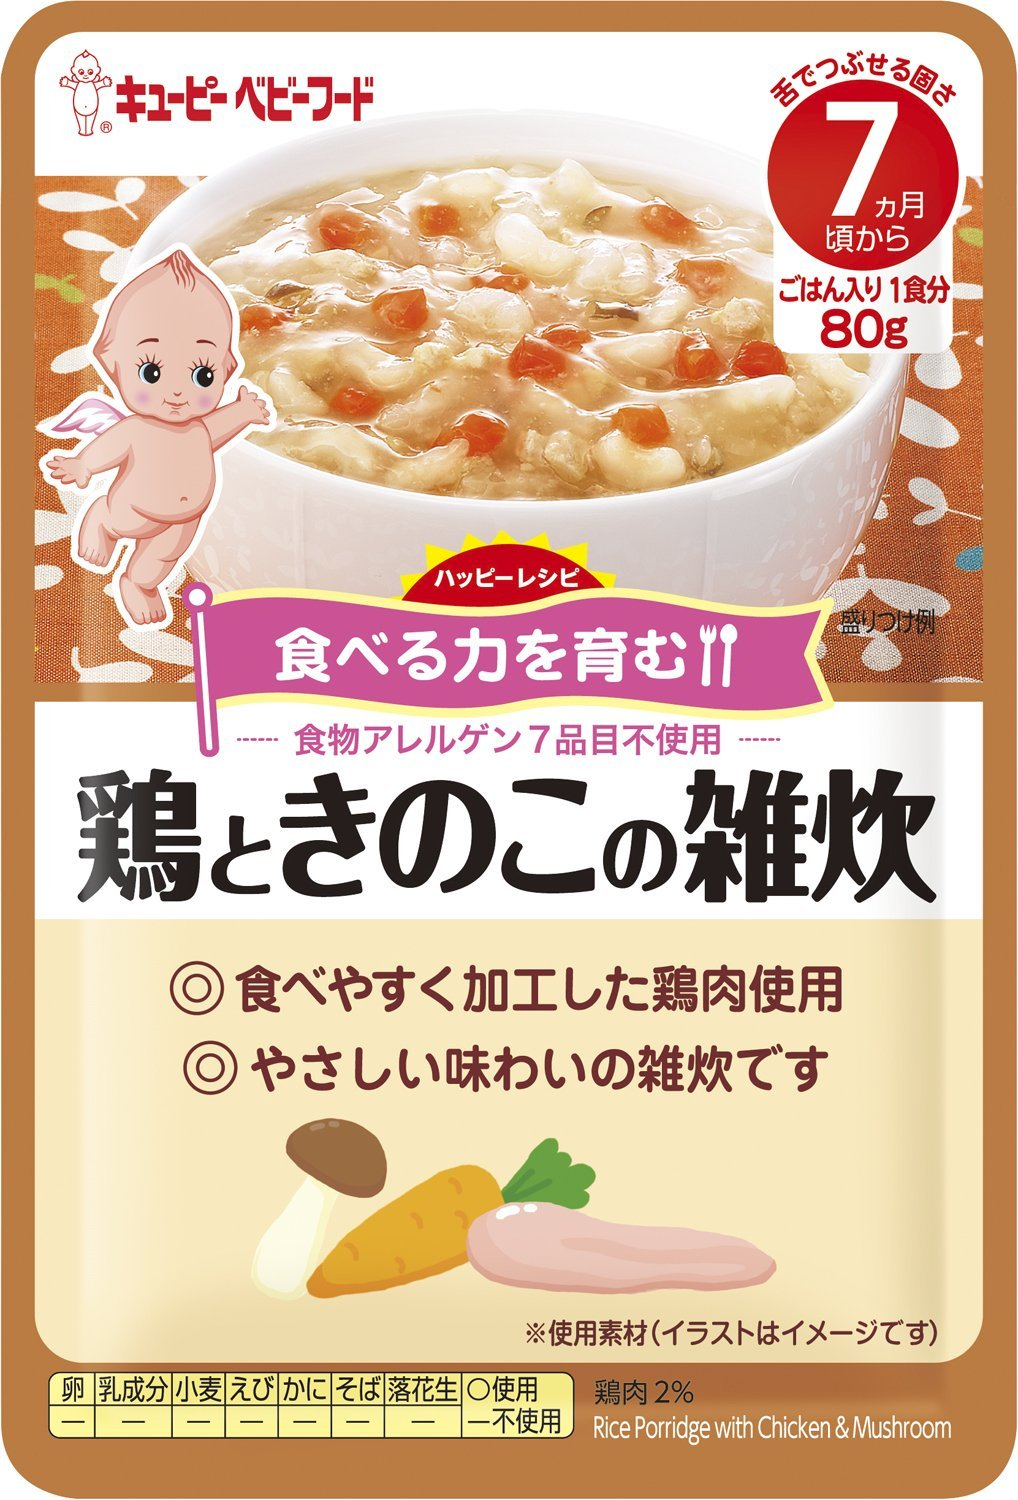 X12 pieces from Kewpie Happy recipe chicken and mushroom porridge 7 months around May of QP 25585